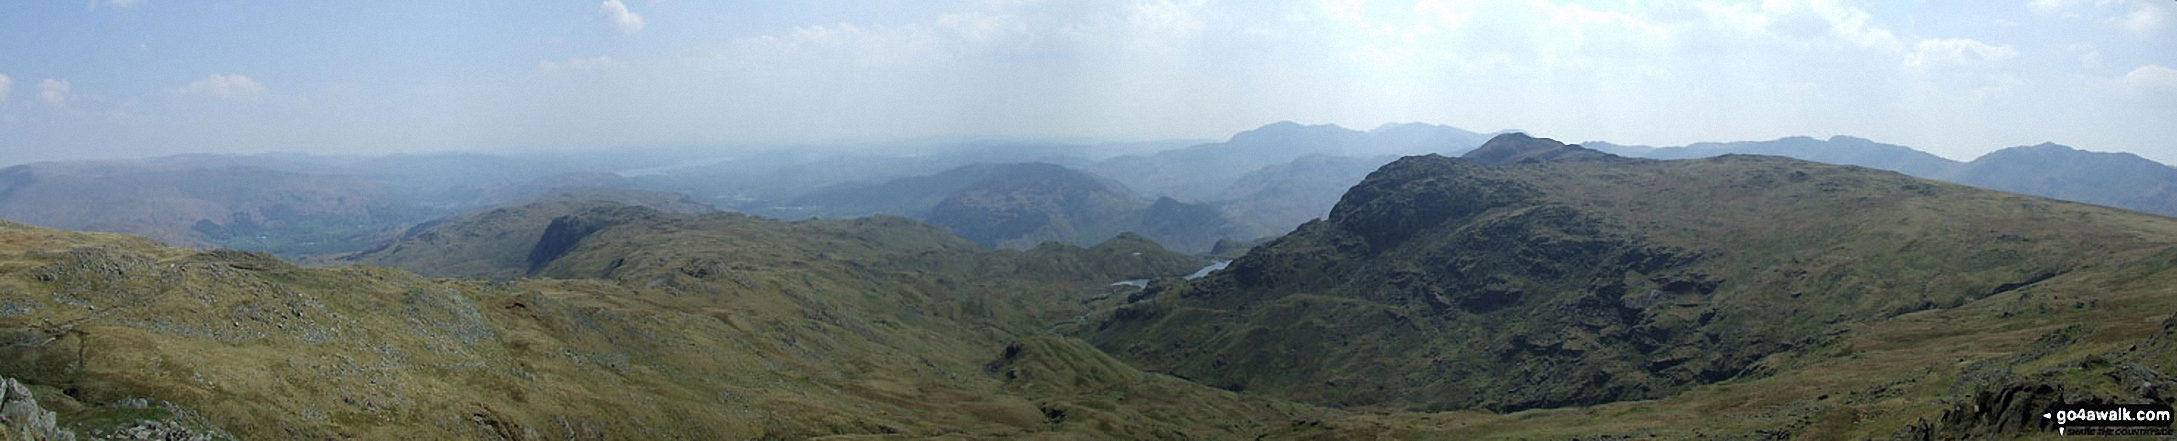 *The view from Sergeant Man featuring Blea Rigg (centre left), Lingmoor Fell (centre distance), Stickle Tarn (partially hidden) and Pavey Ark with Harrison Stickle beyond (The Langdale Pikes) (centre right)